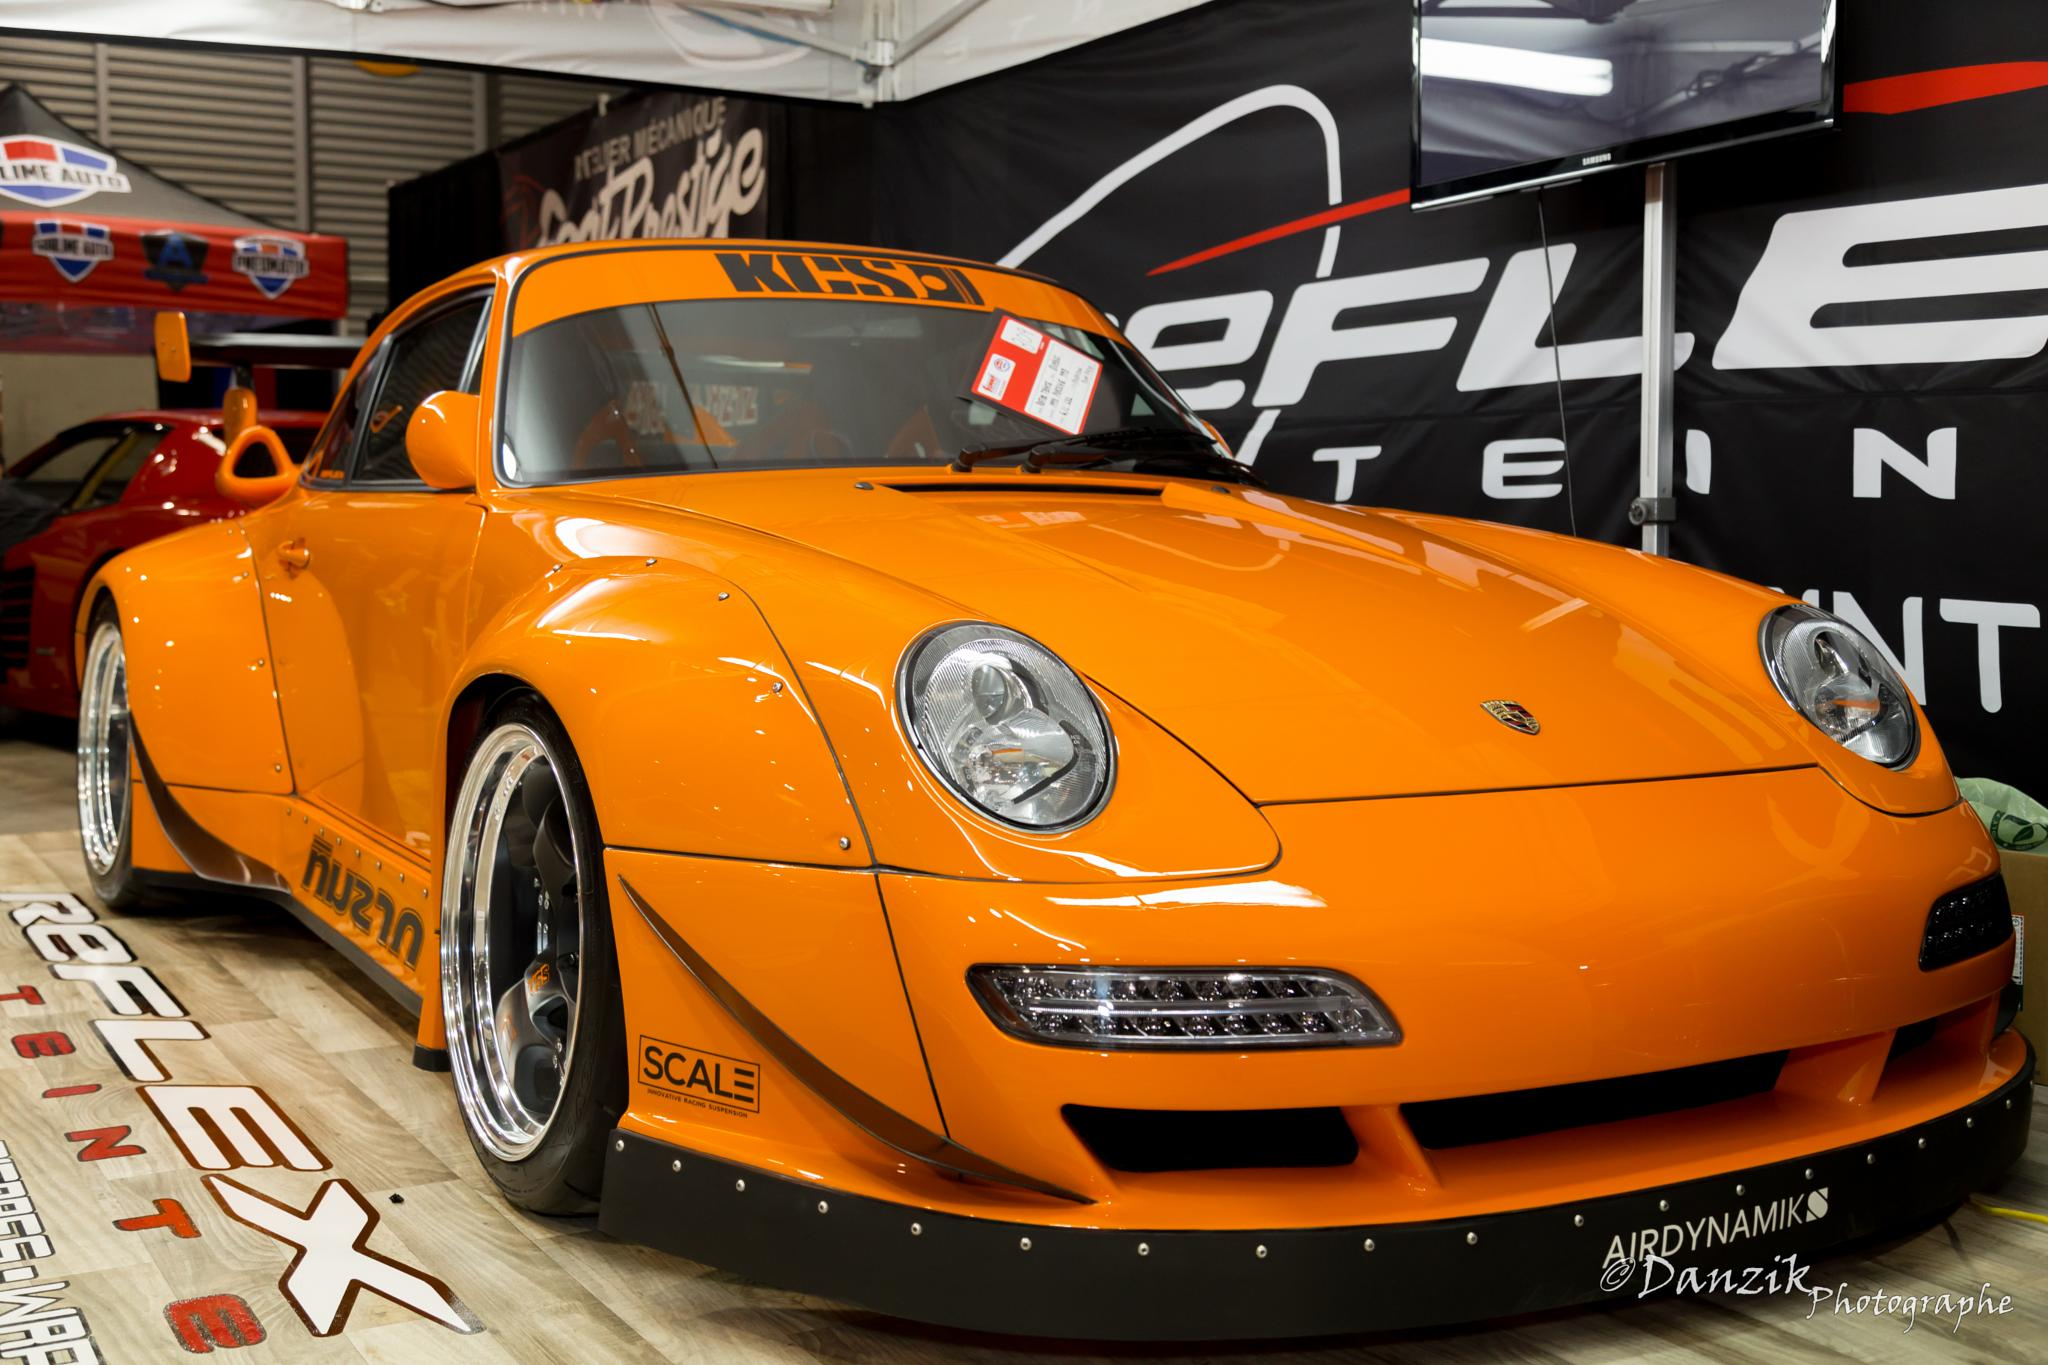 Porshe by Danzik Photographe